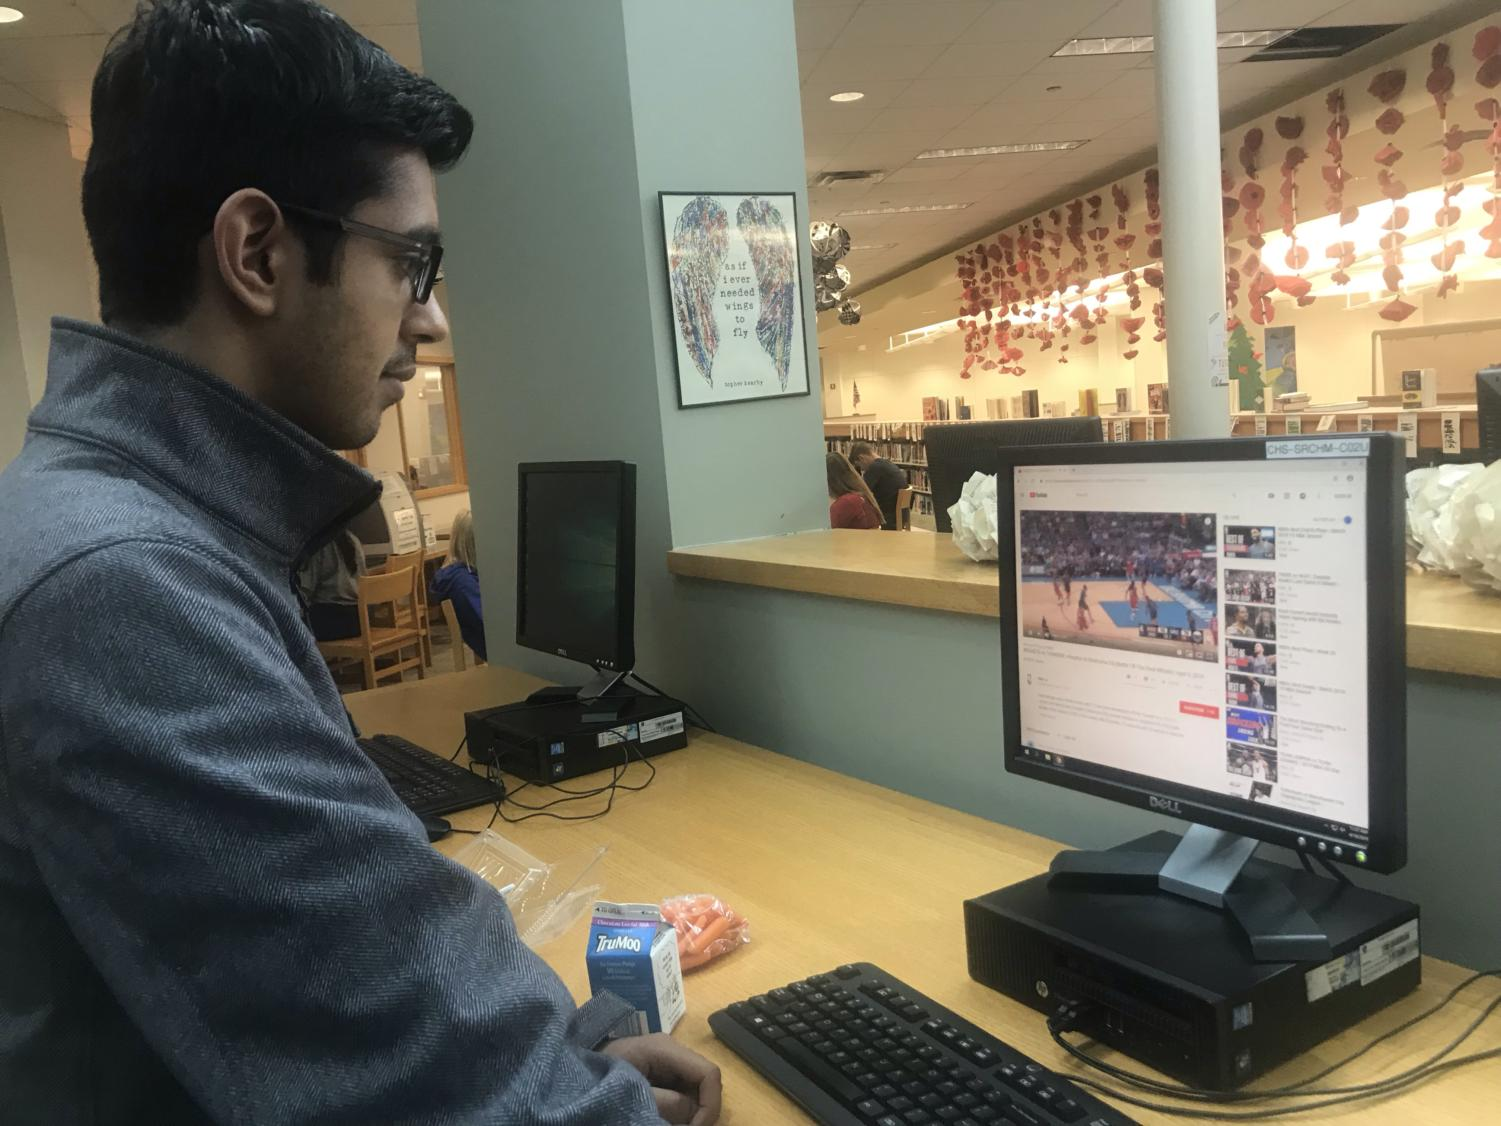 Senior Sumeir Ahmed watches a game of basketball during period B3. Ahmed said he was previously completing his math homework.